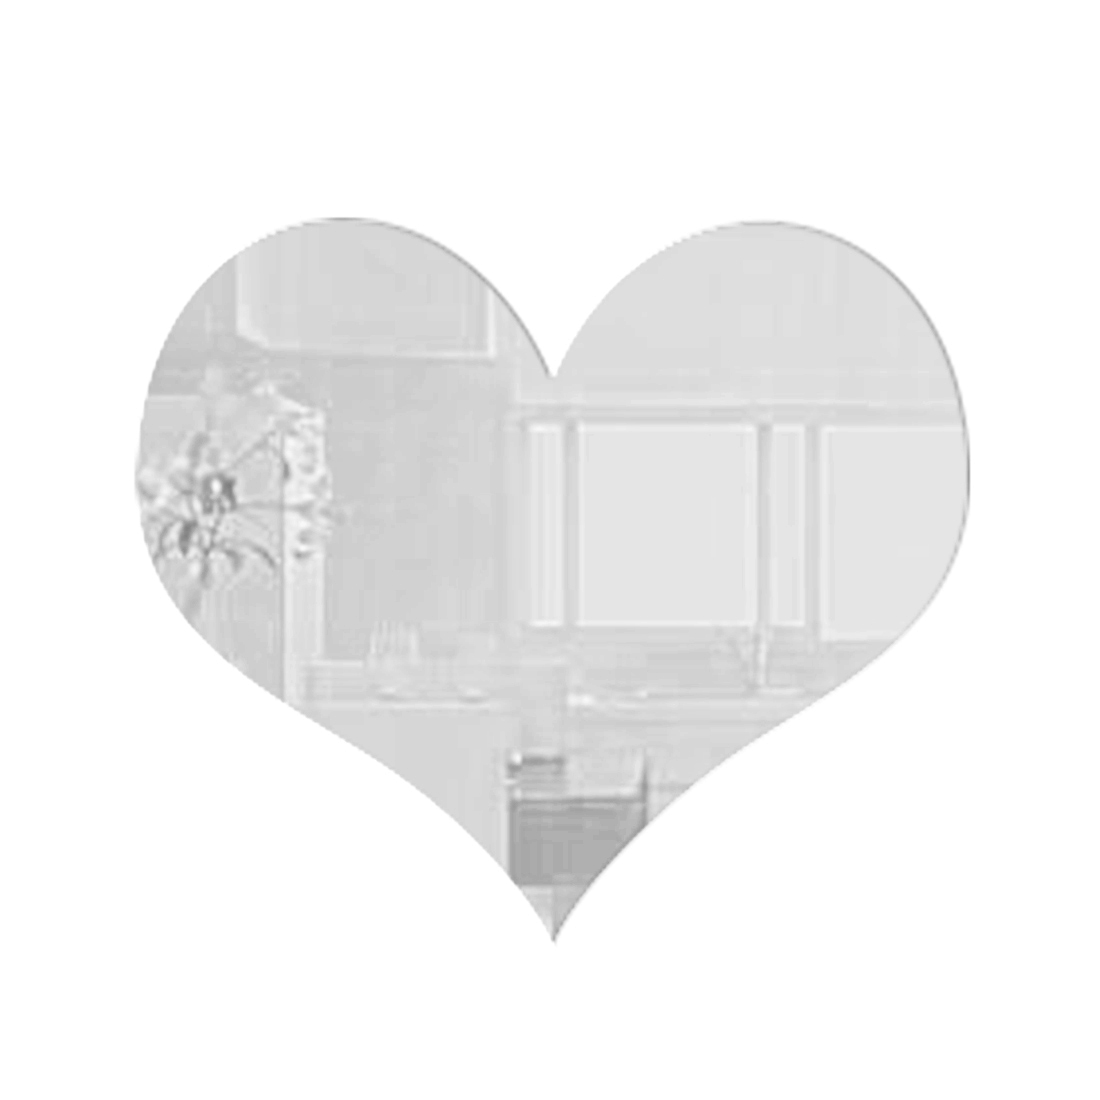 Fashion Wedding Love Home Decoration Heart Mirror Wall Stickers Alphabet DIY Home Decor For Wall(China (Mainland))